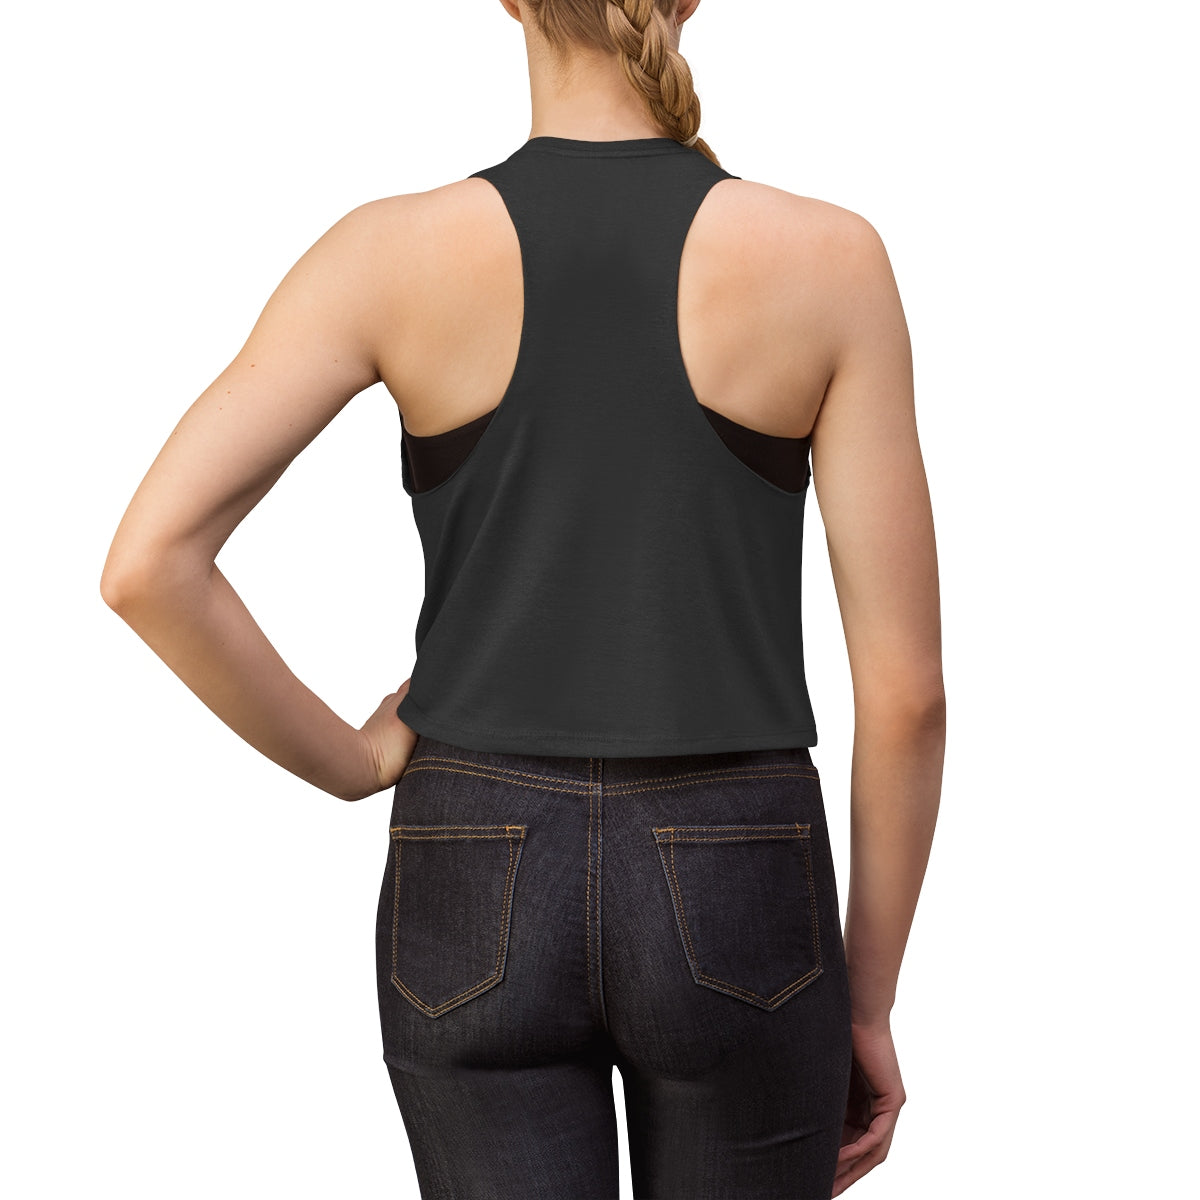 Women's Crop top - Epiphany II